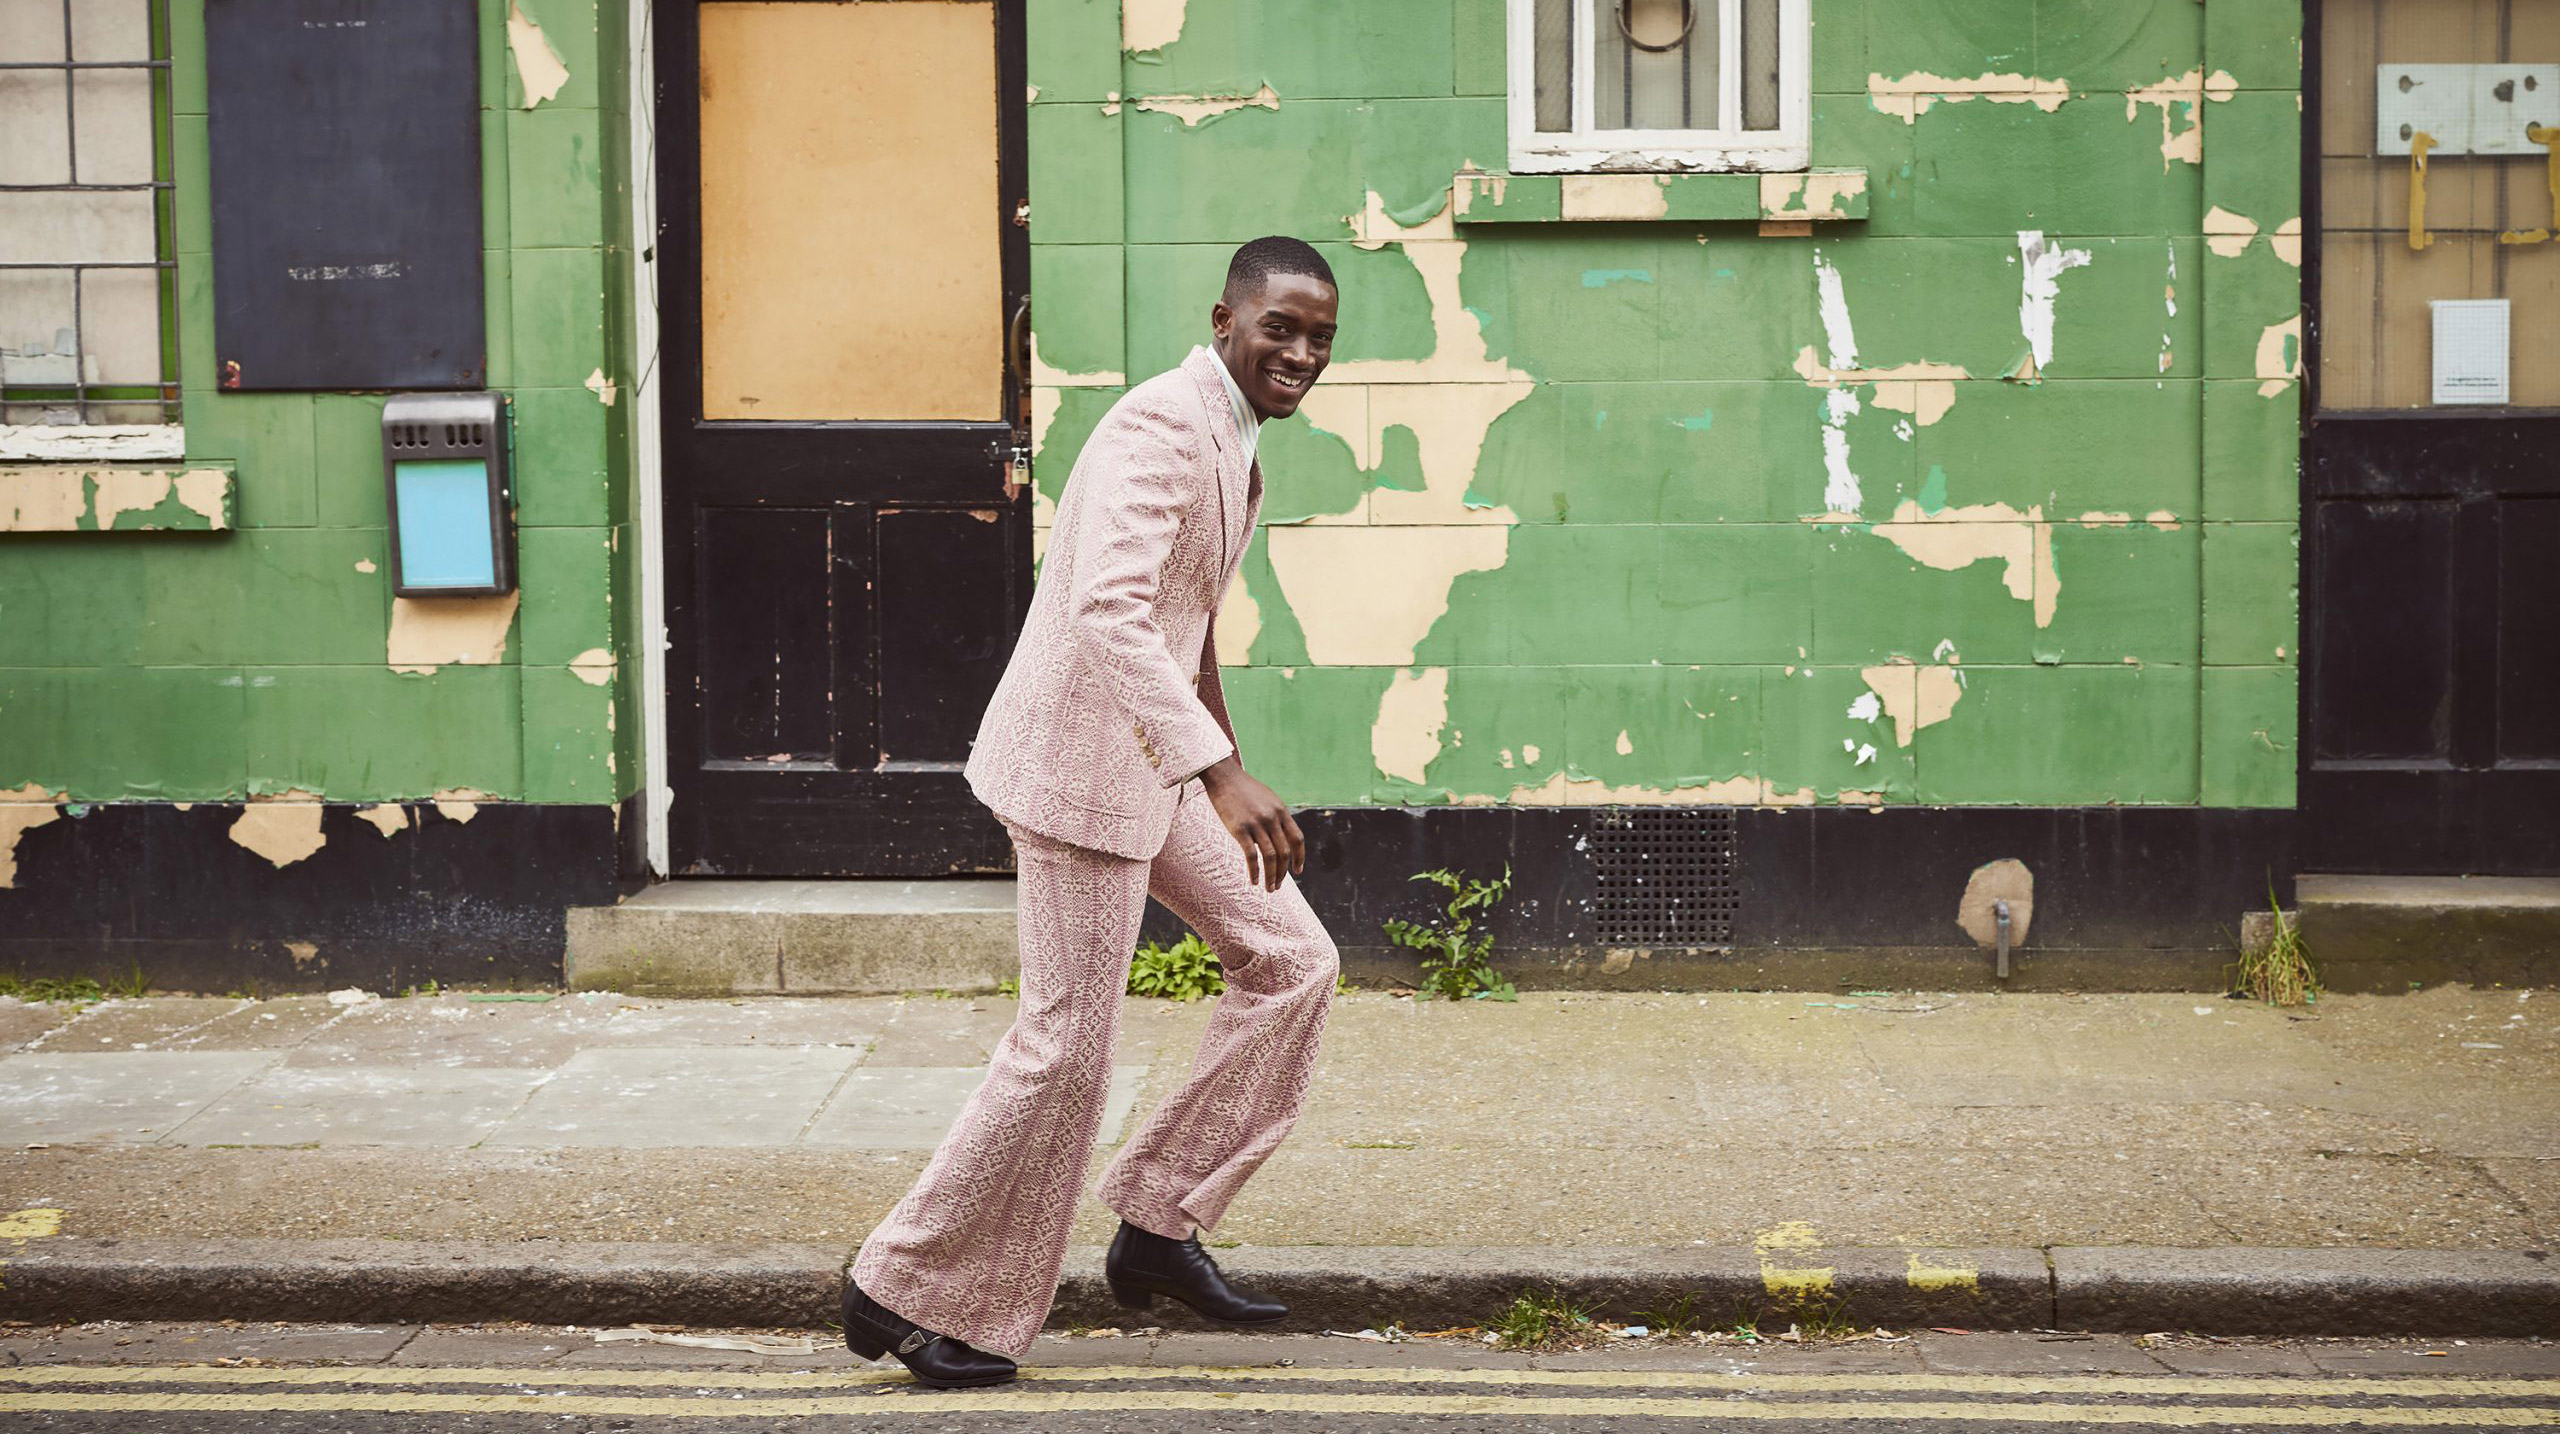 Damson Idris smiling while walking on the road by a flaking green painted wall